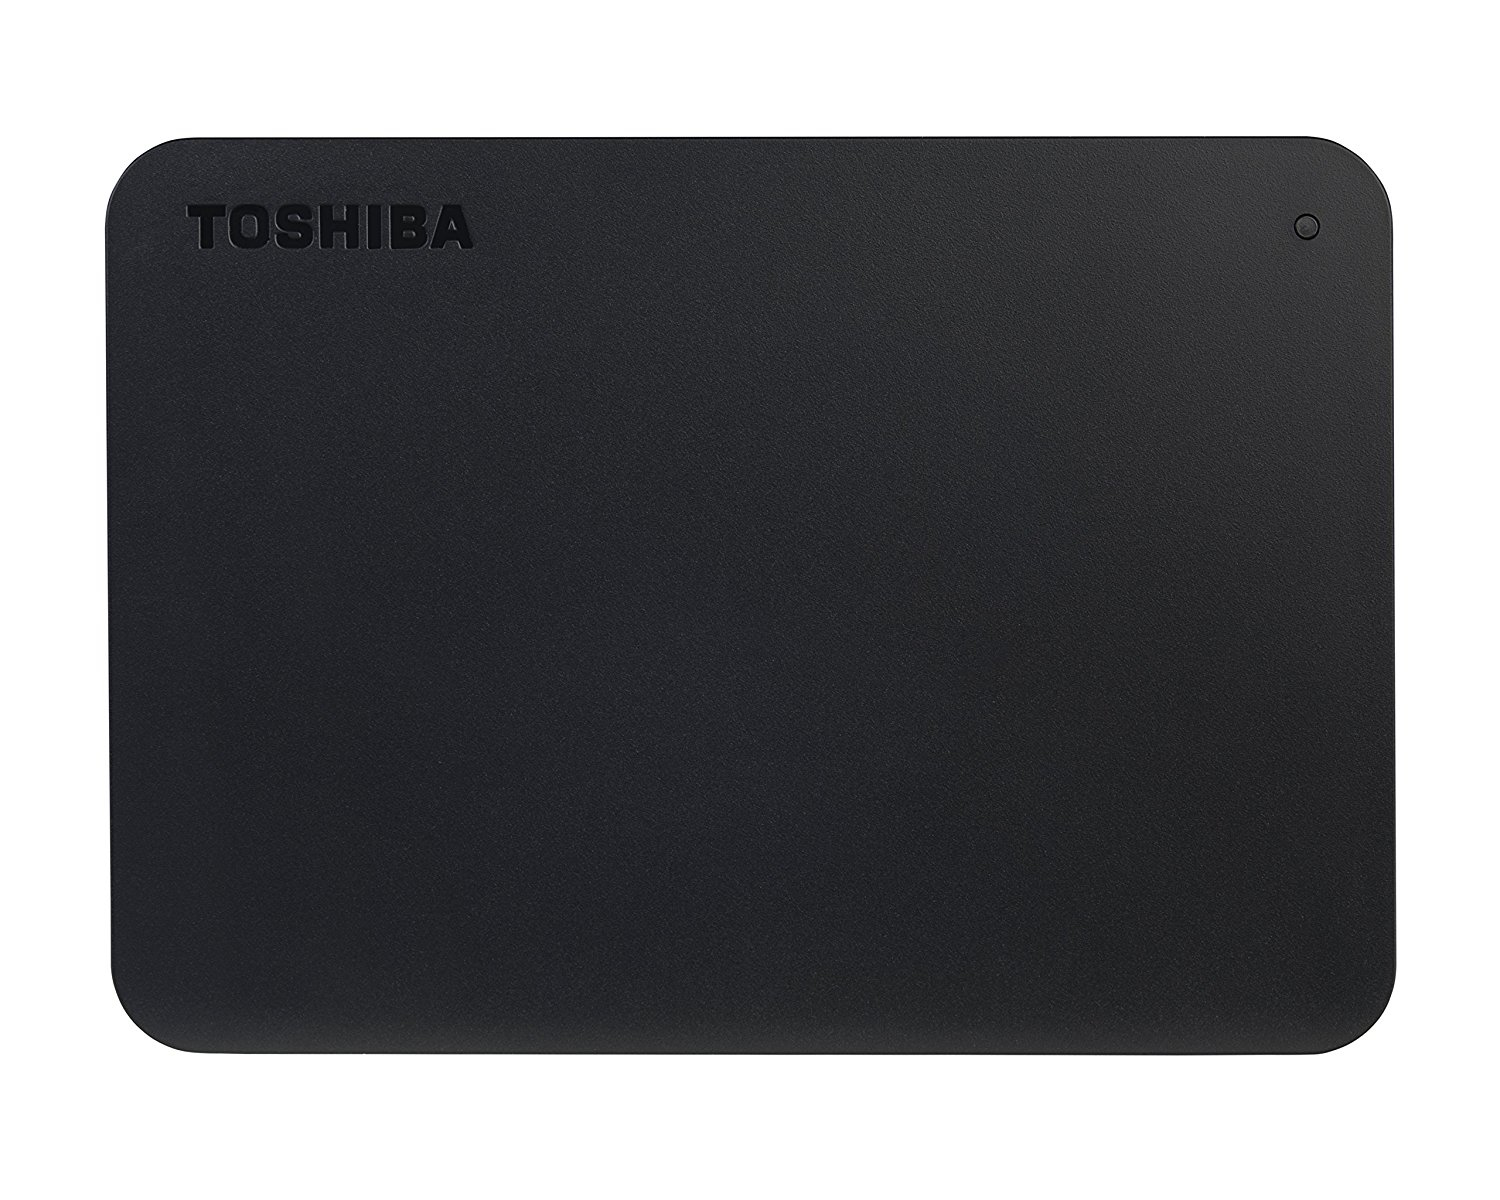 TOSHIBA HDTB330EK3CB 3000GB BLACK EXTERNAL HARD DRIVE